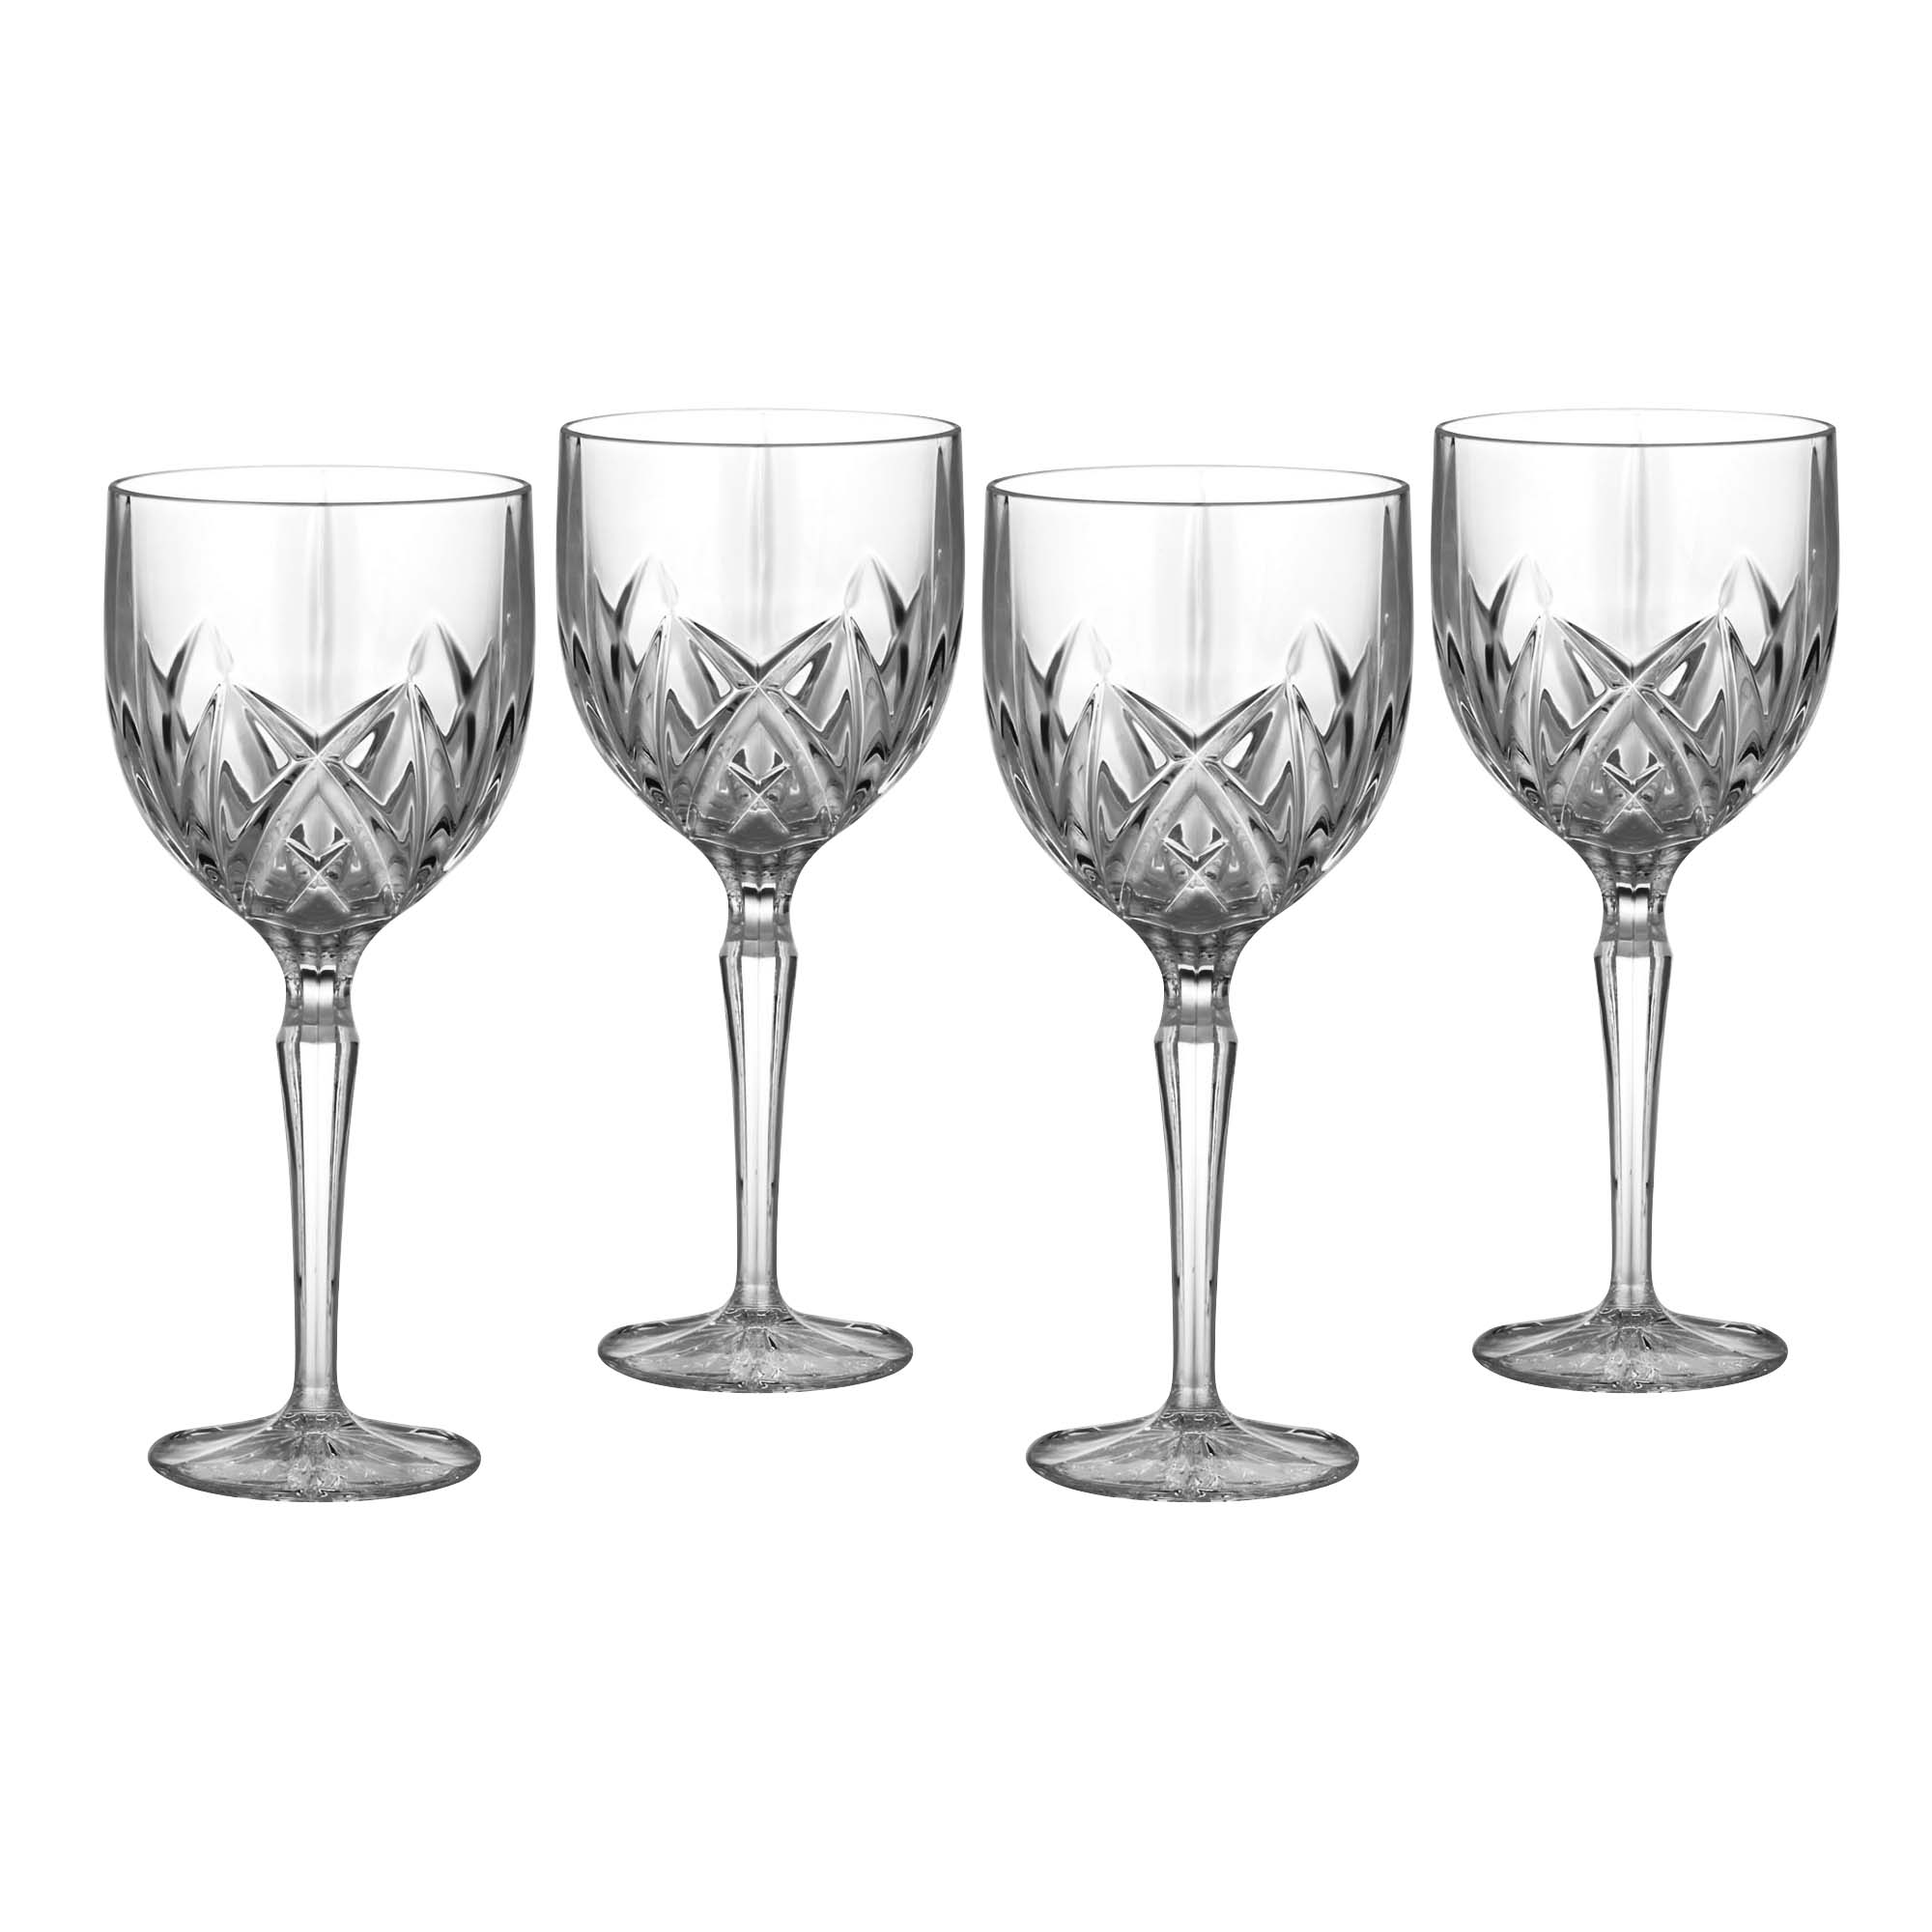 Cheap Wine Glasses Worterford Crystal Wine Glass Set Wedding Gift Unique Gift